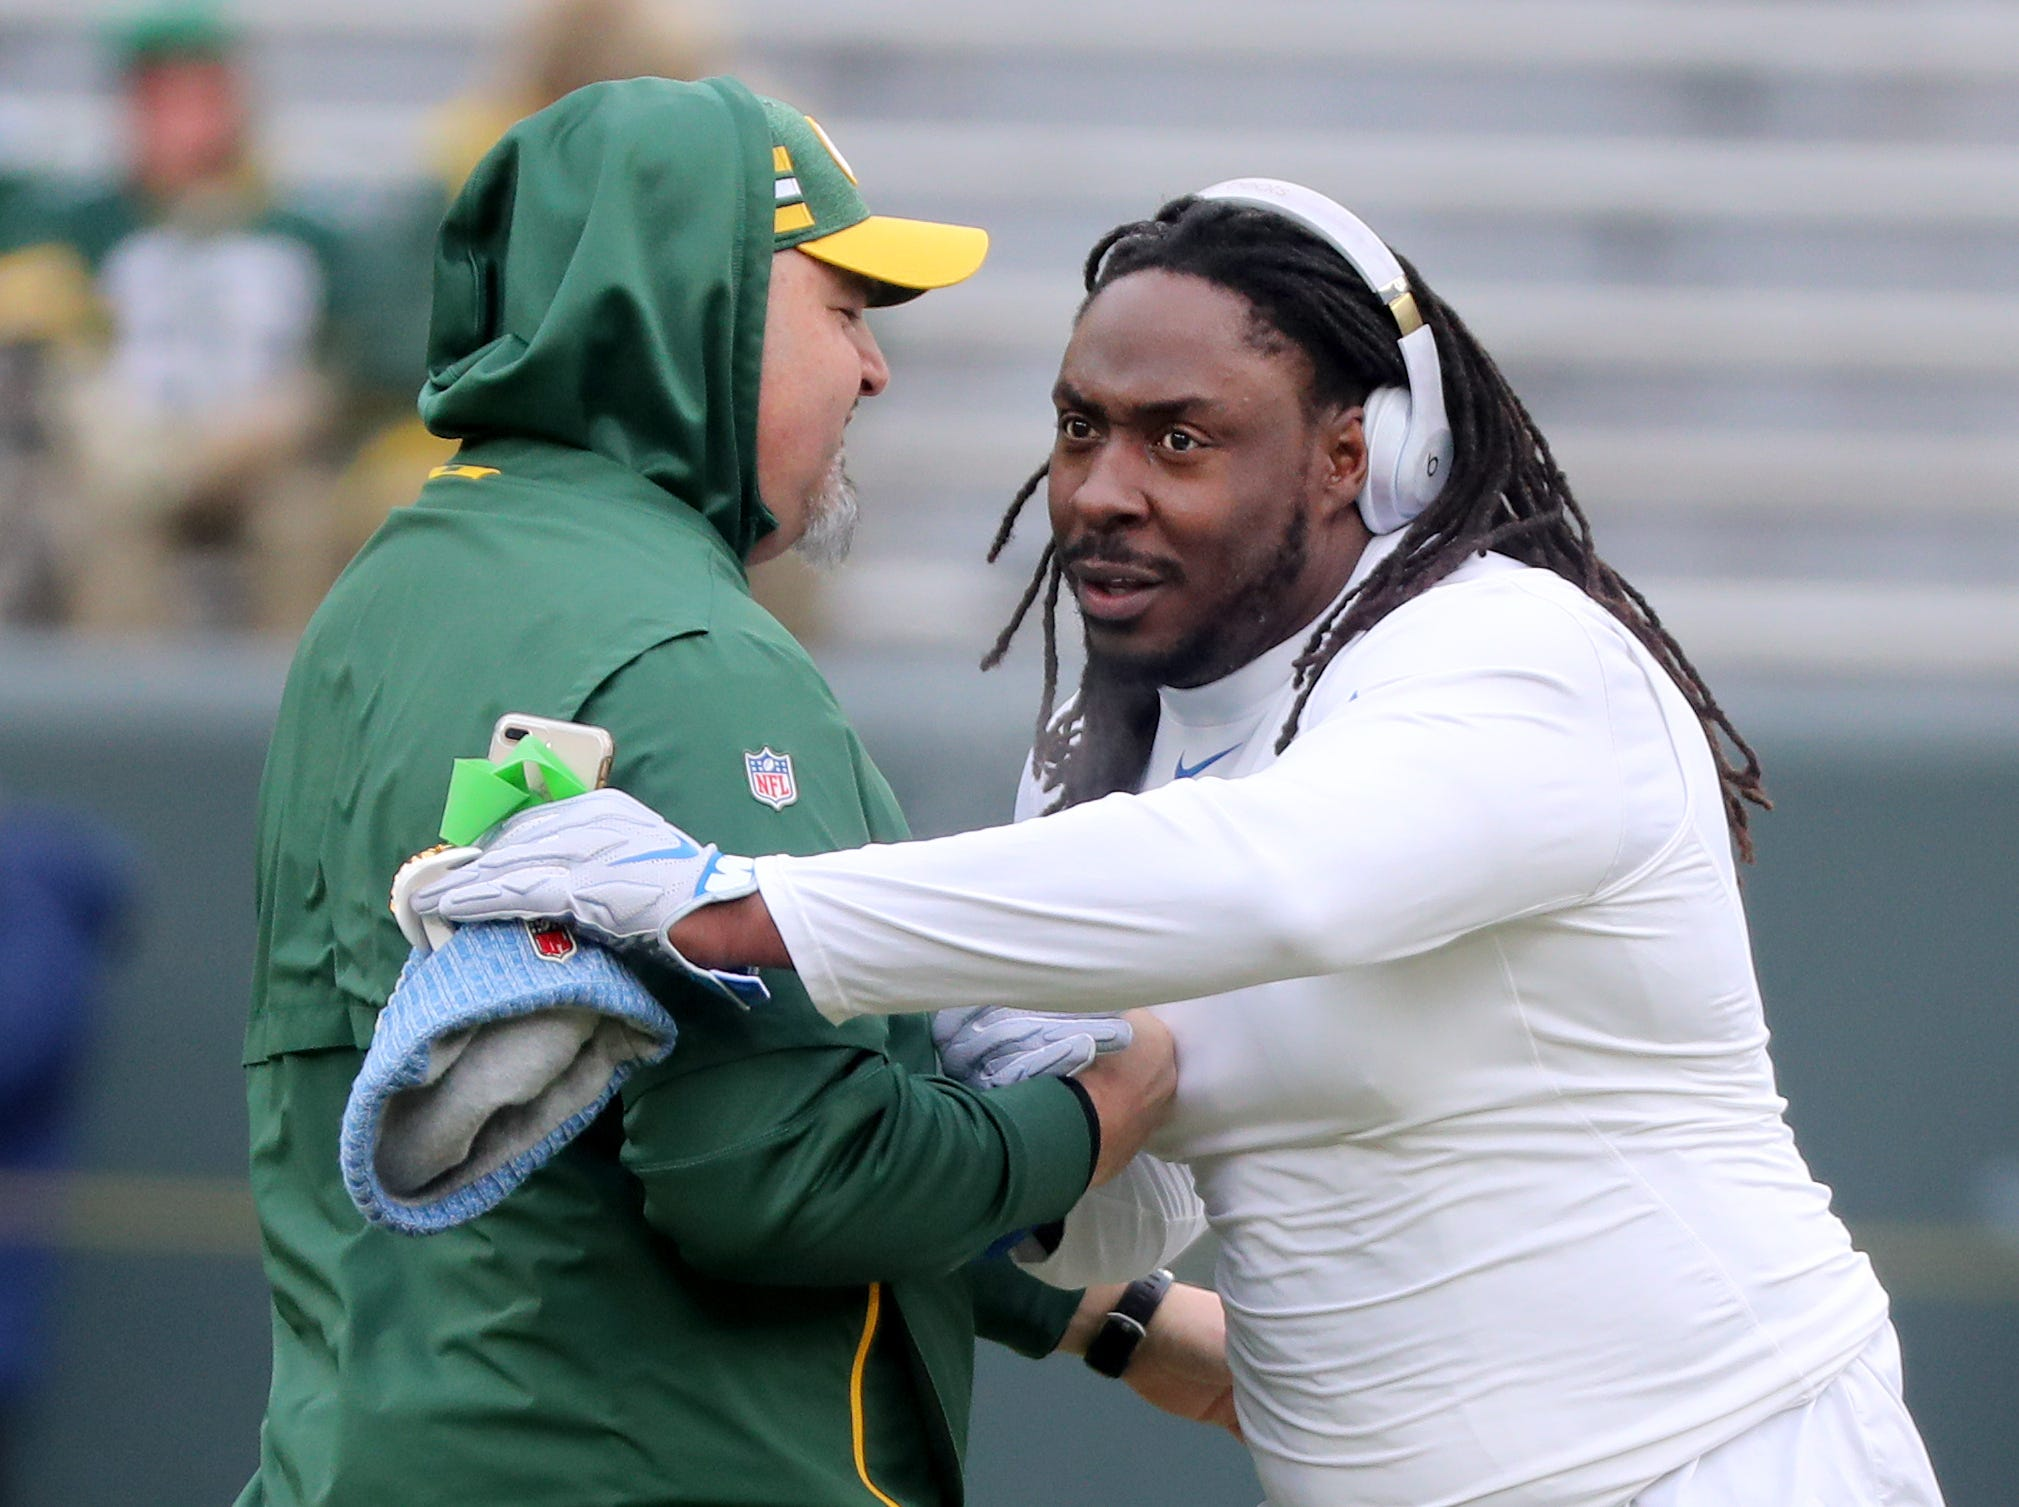 Former Packer Ricky Jean Francois greets a Packers staff member before the game against the Detroit Lions at Lambeau Field Sunday, December 30, 2018 in Green Bay, Wis.